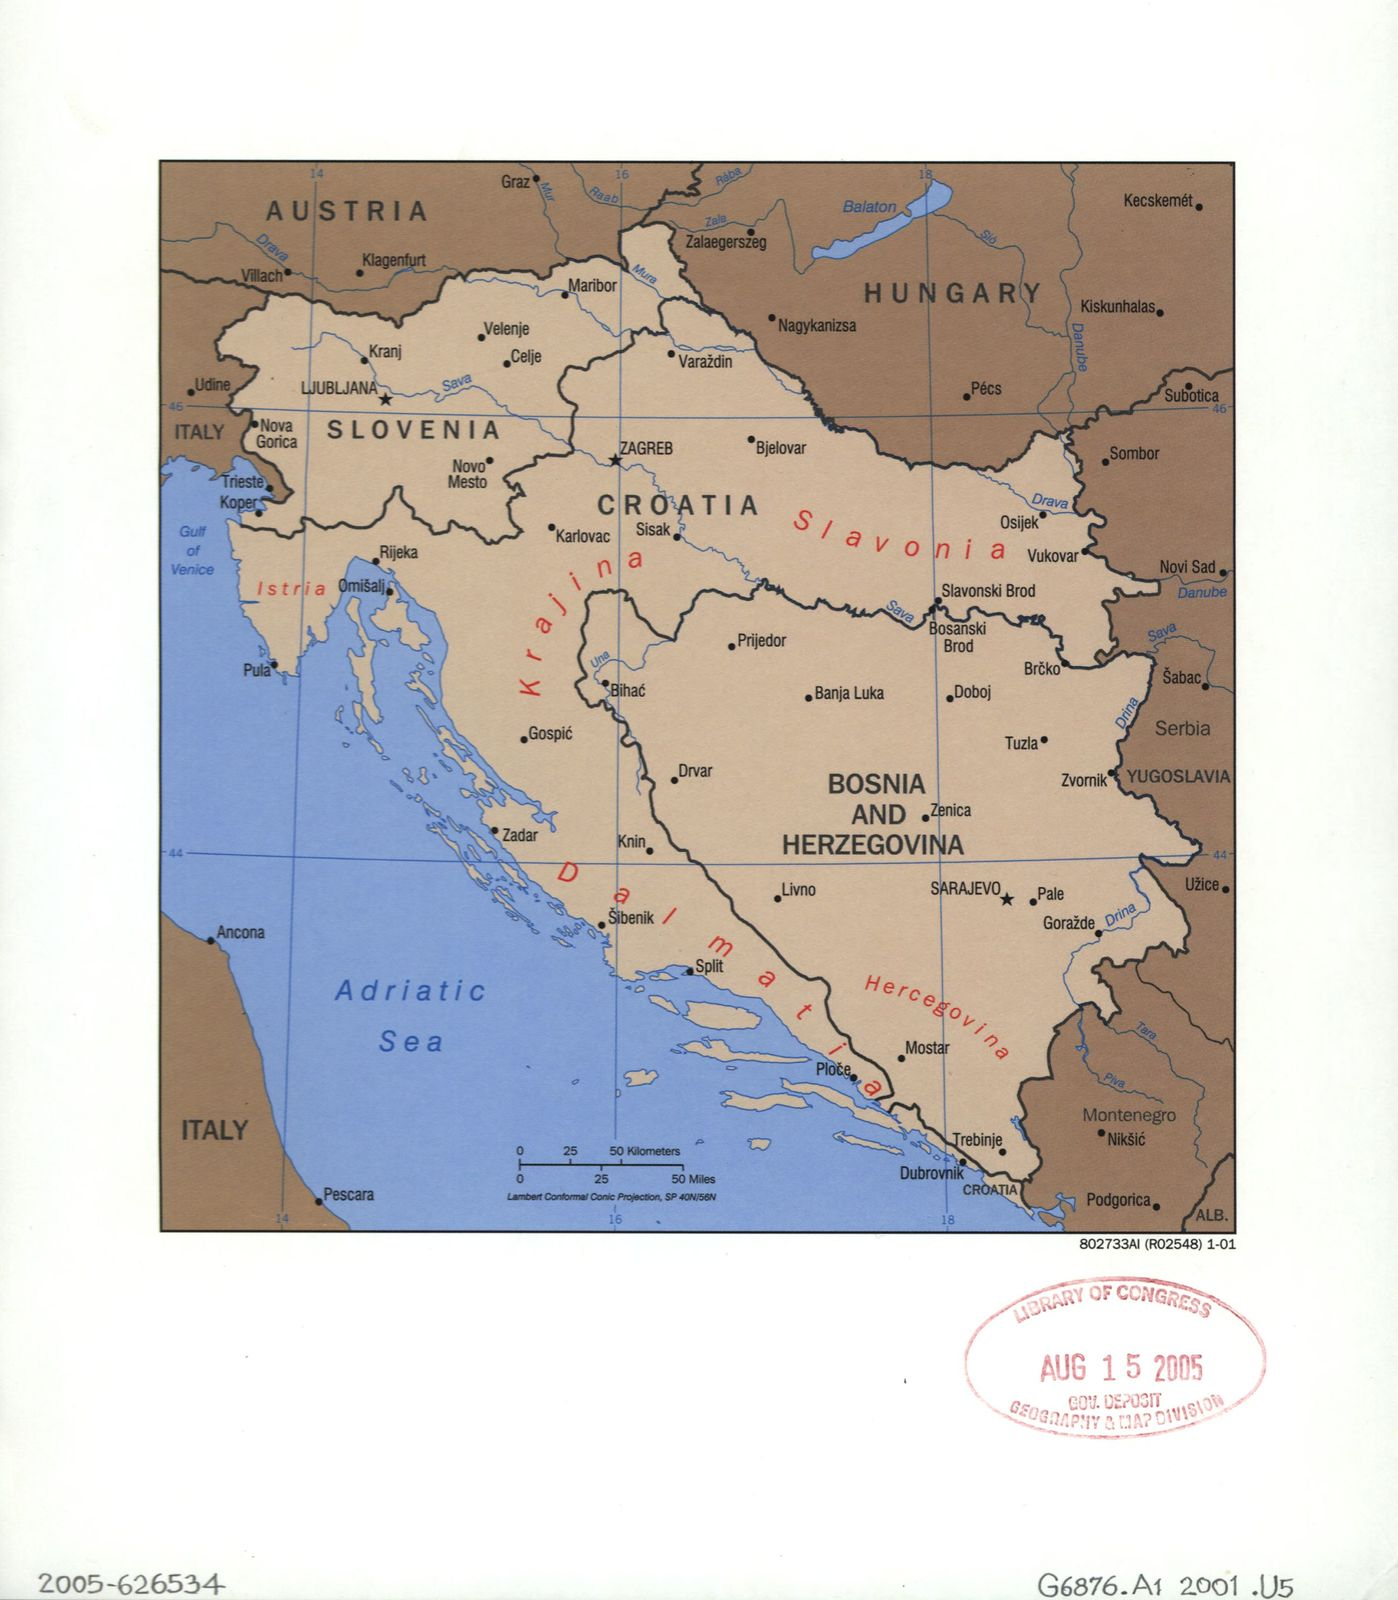 [Outline map of Slovenia, Croatia, and Bosnia and Hercegovina].